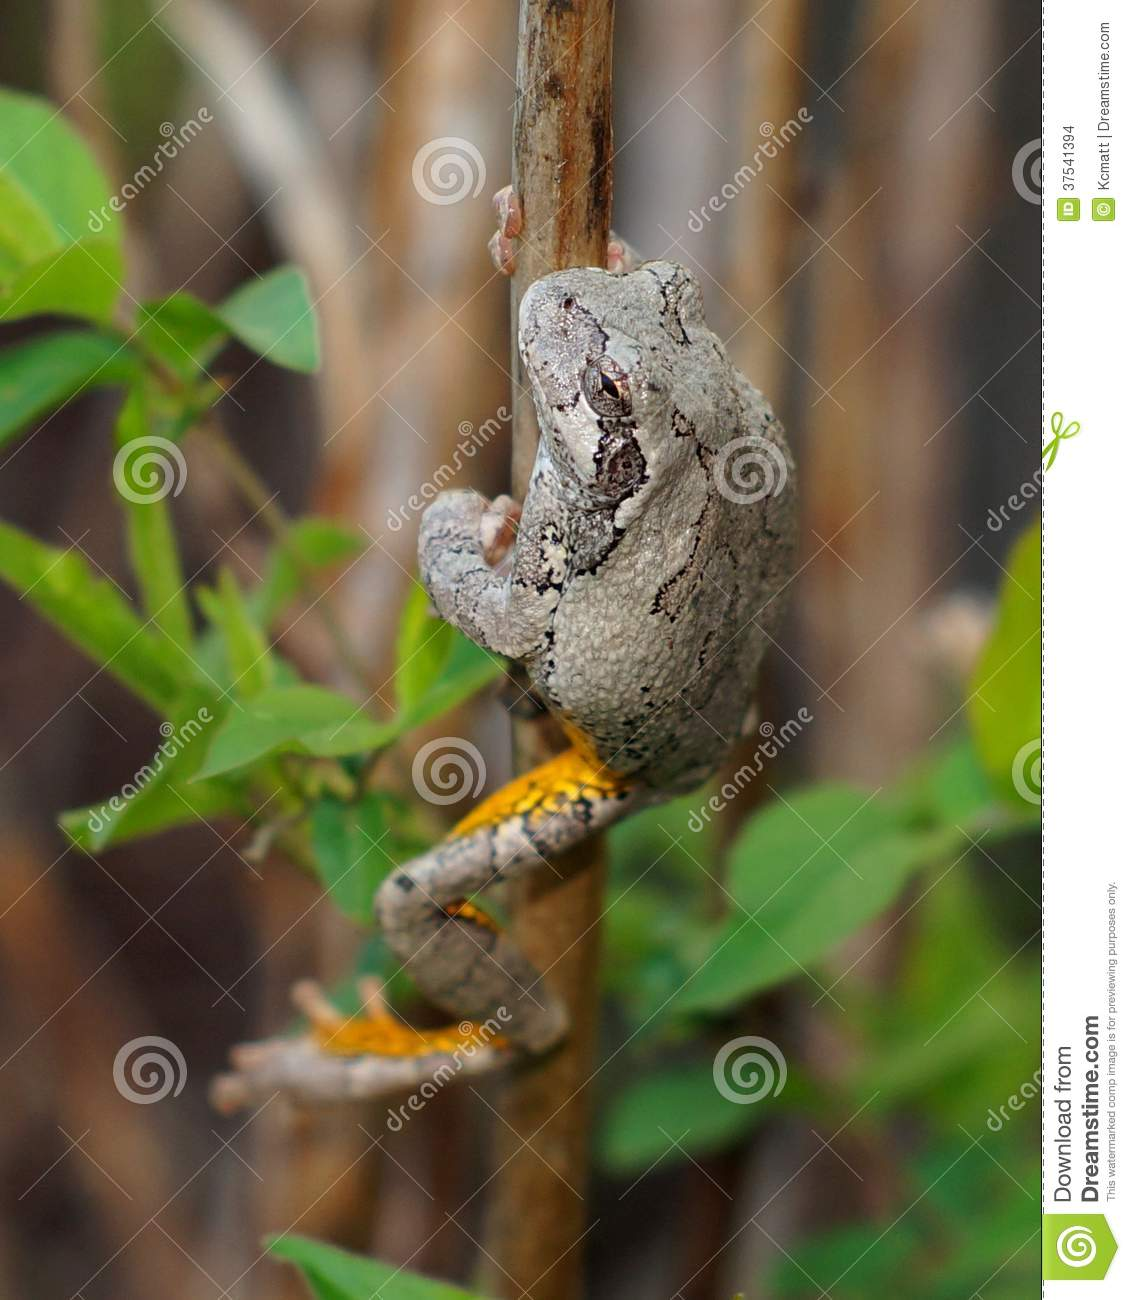 Gray Treefrog or Tree Frog, Hyla versicolor